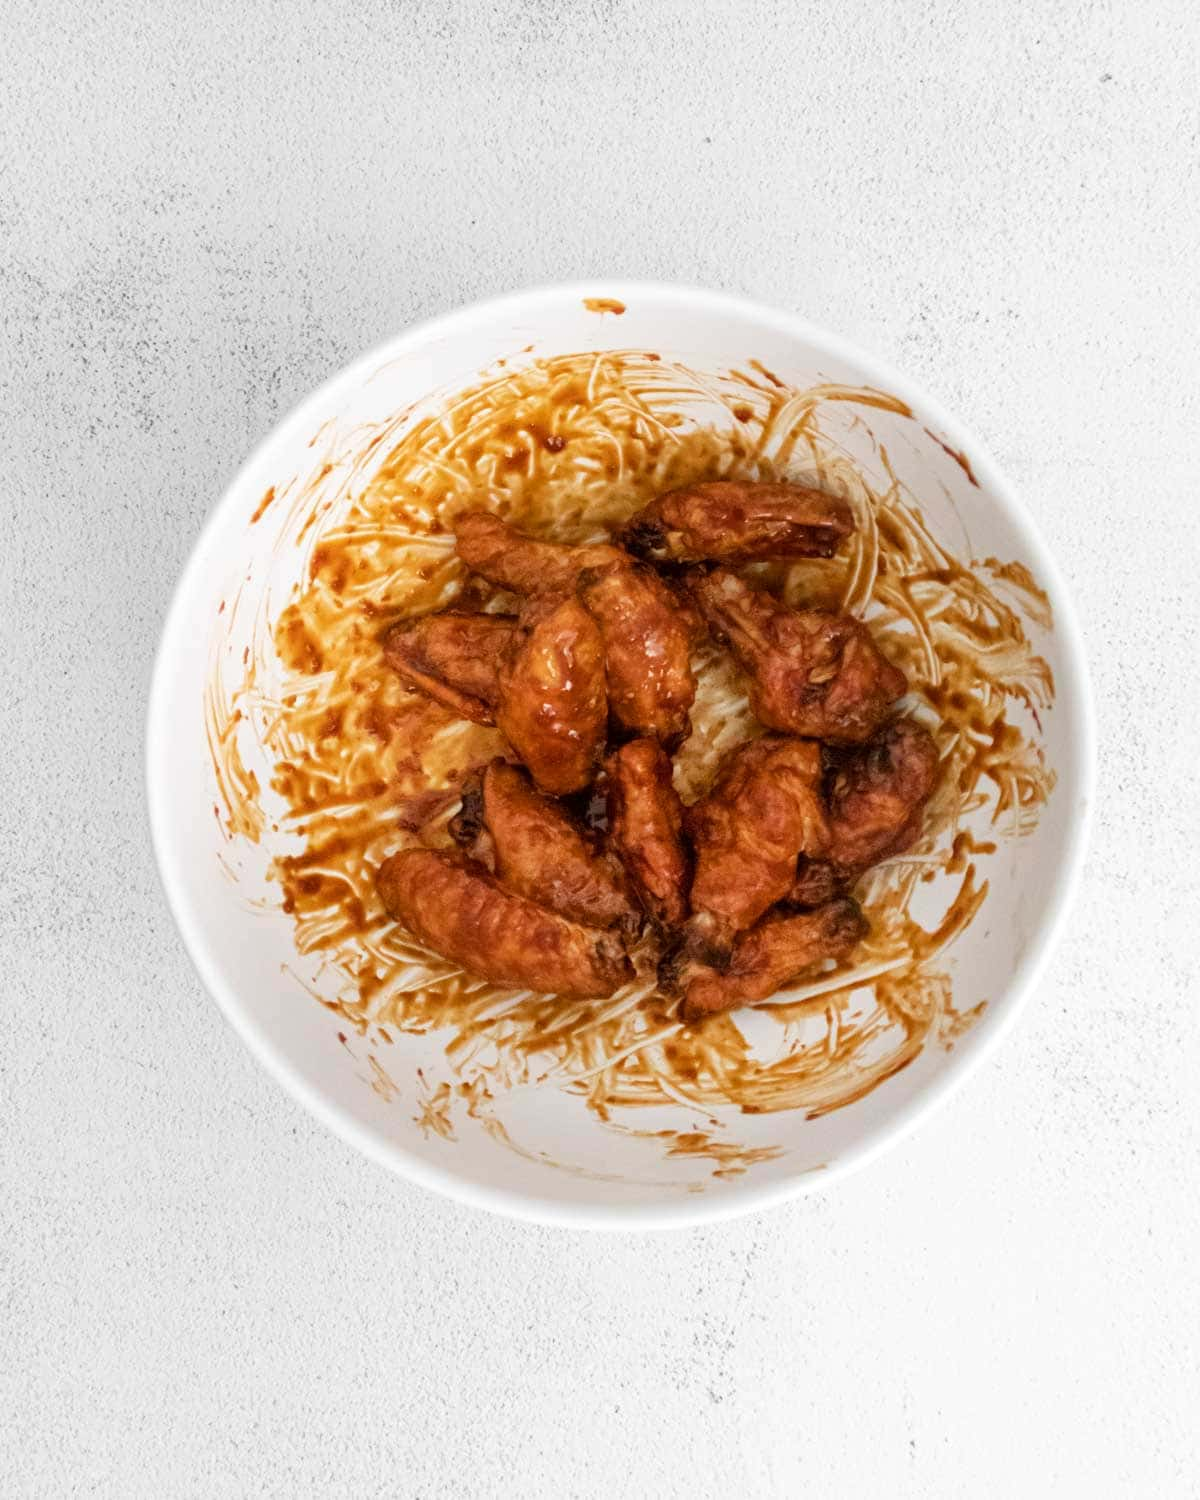 White bowl with sticky chicken wings